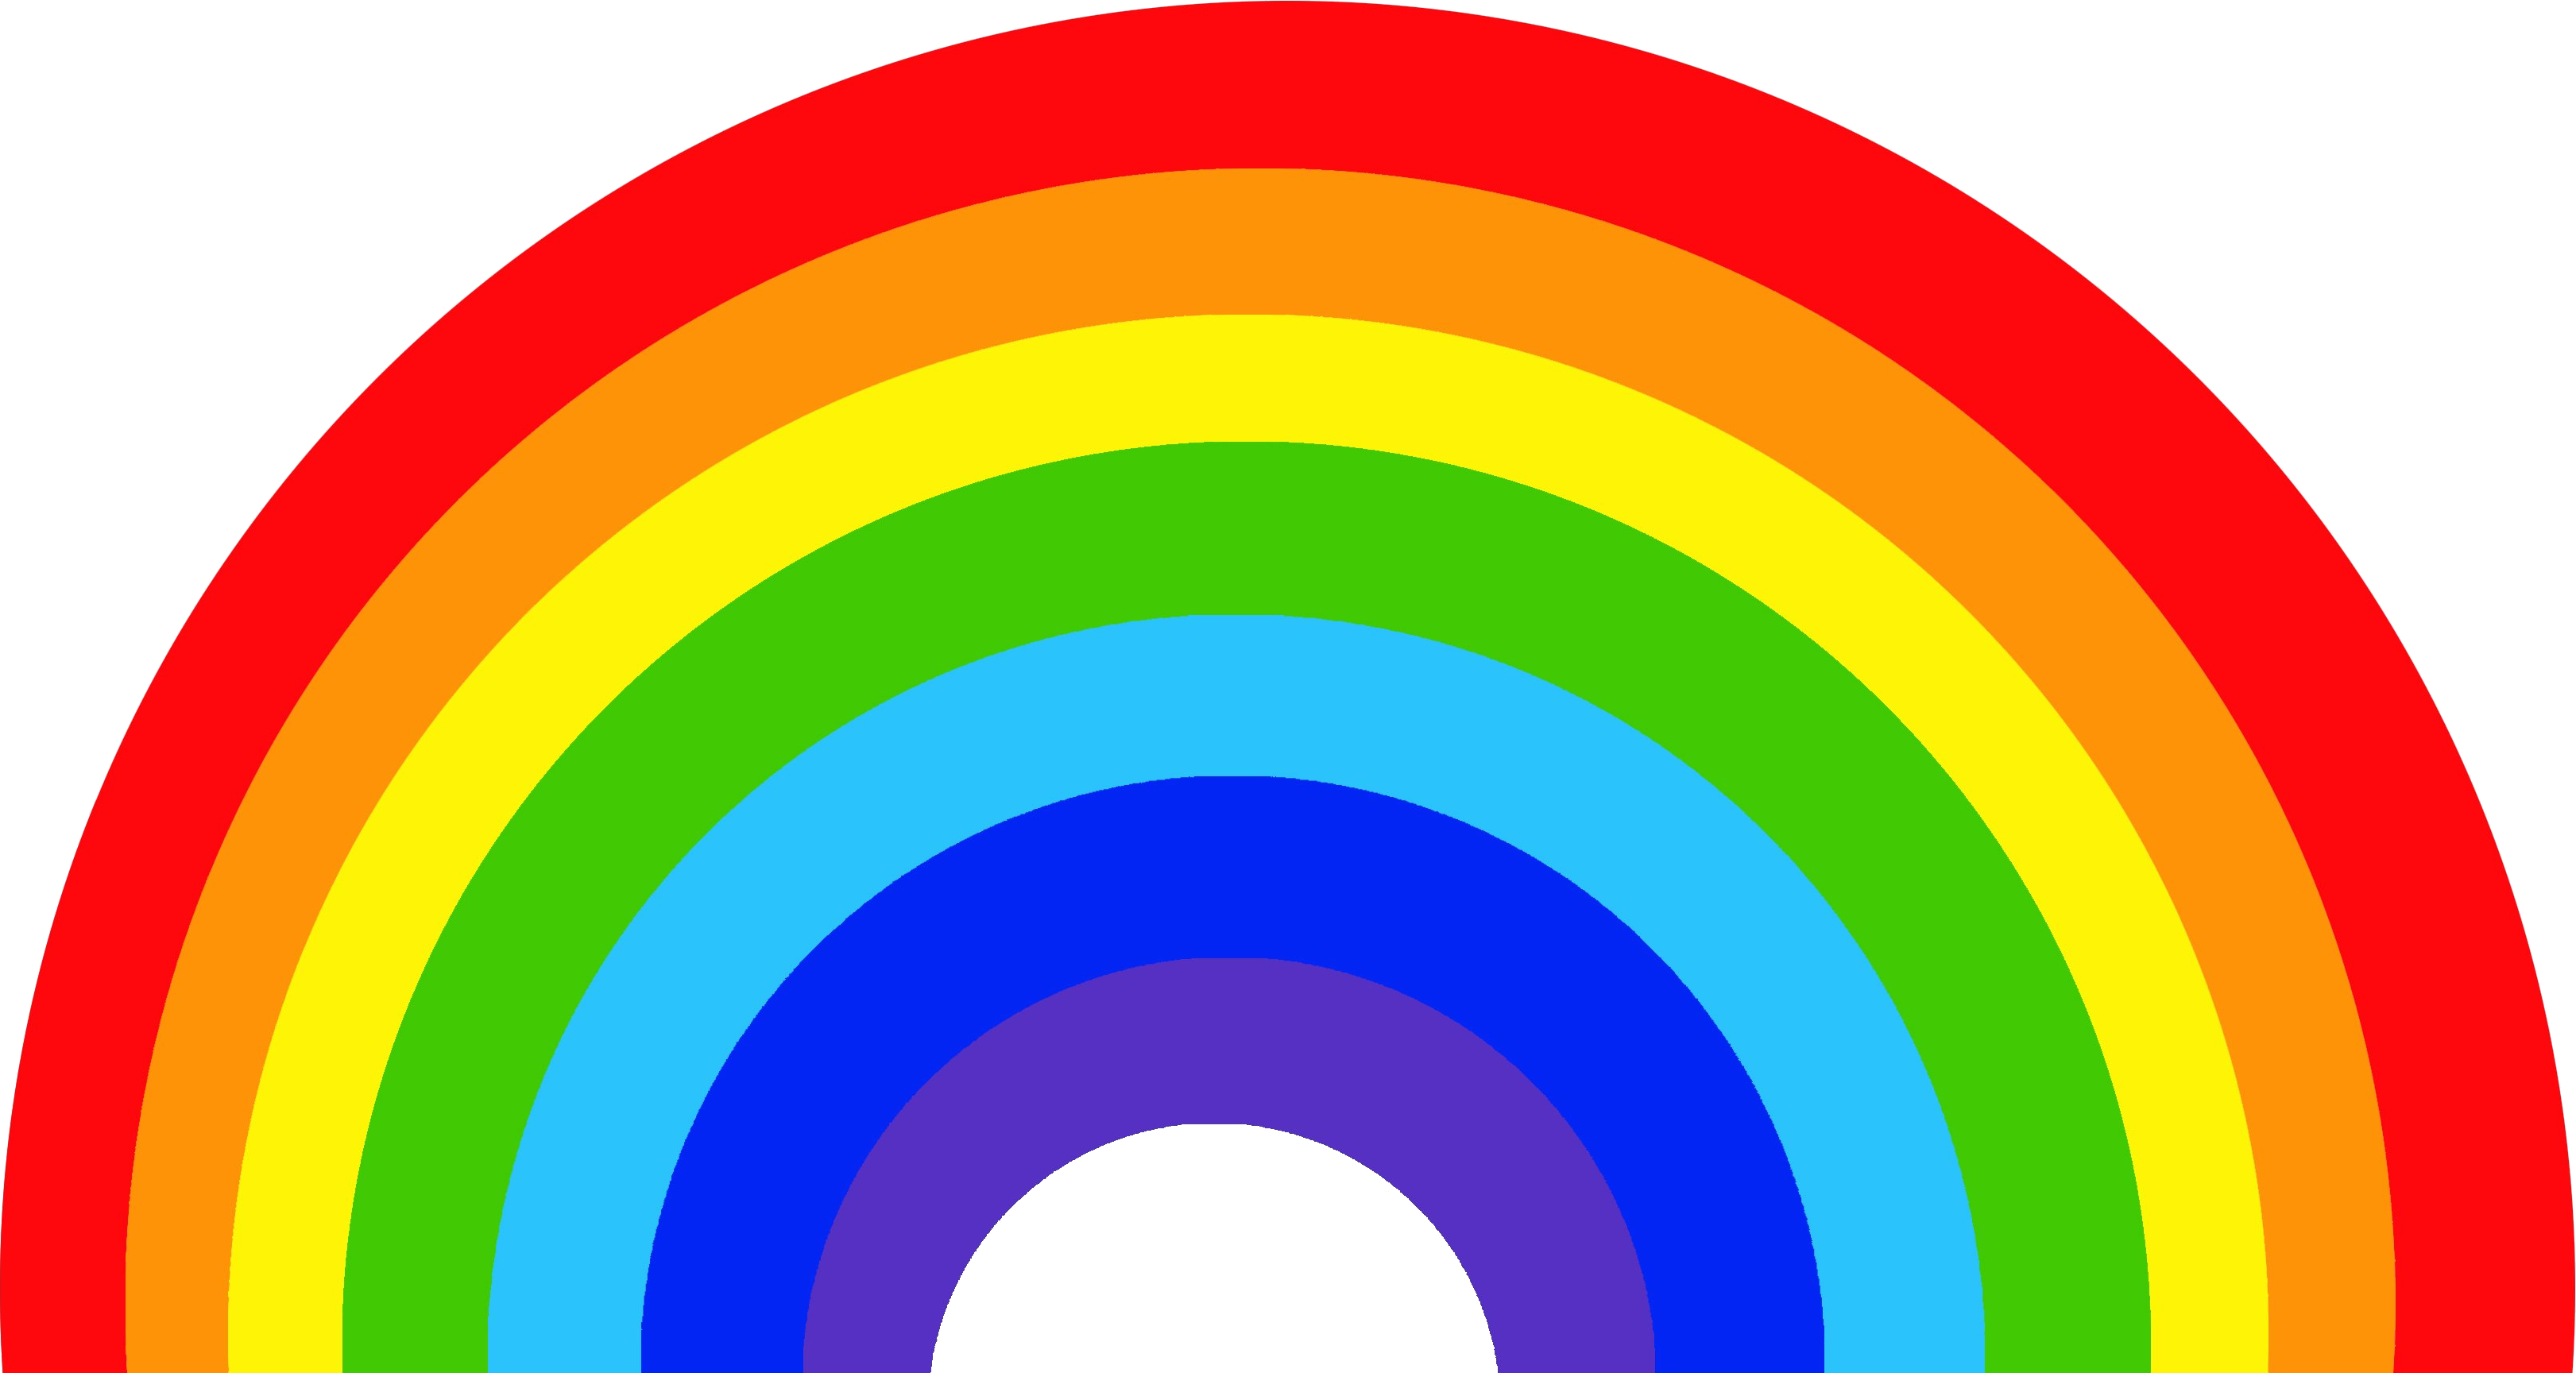 Rainbow png transparent background. Images free download image